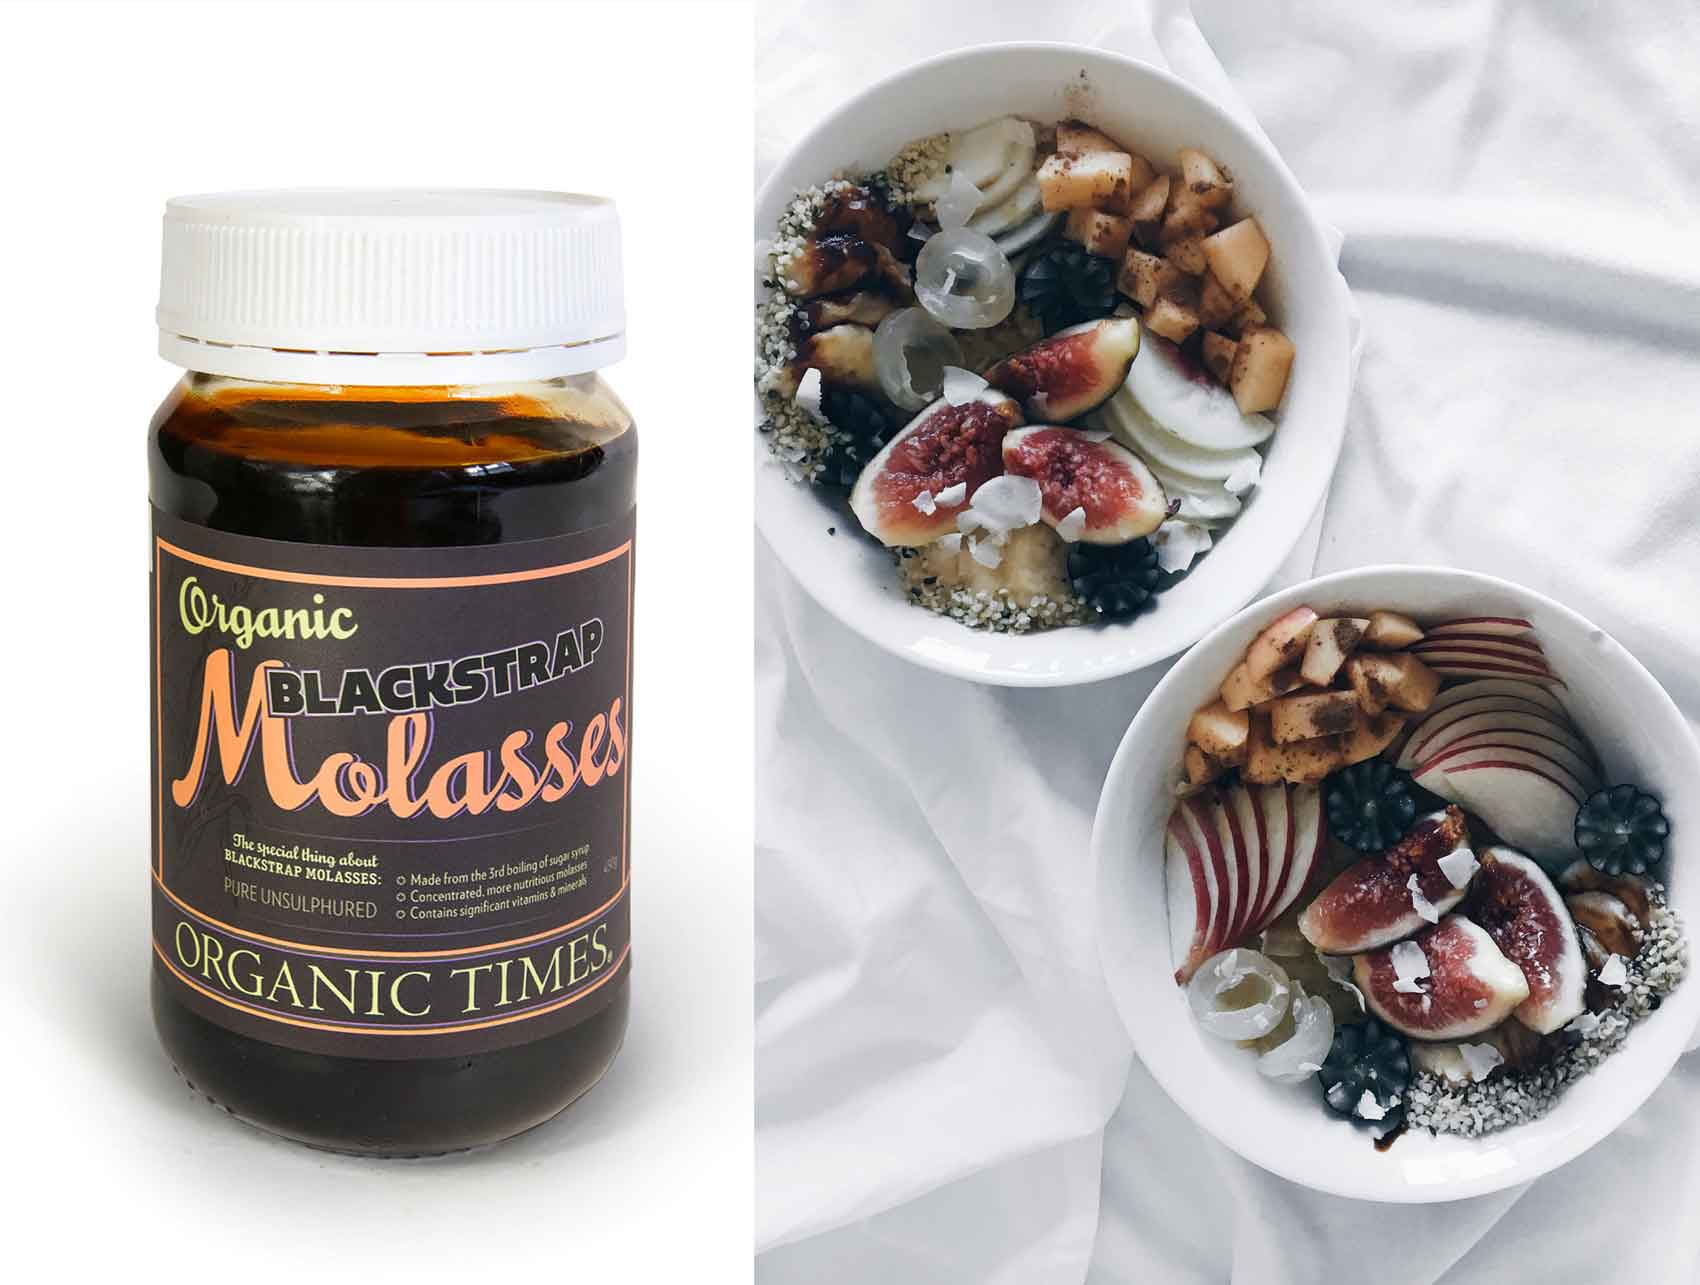 A jar of Organic Times Molasses next to a bowl of oatmeal topped with a variety of fruits